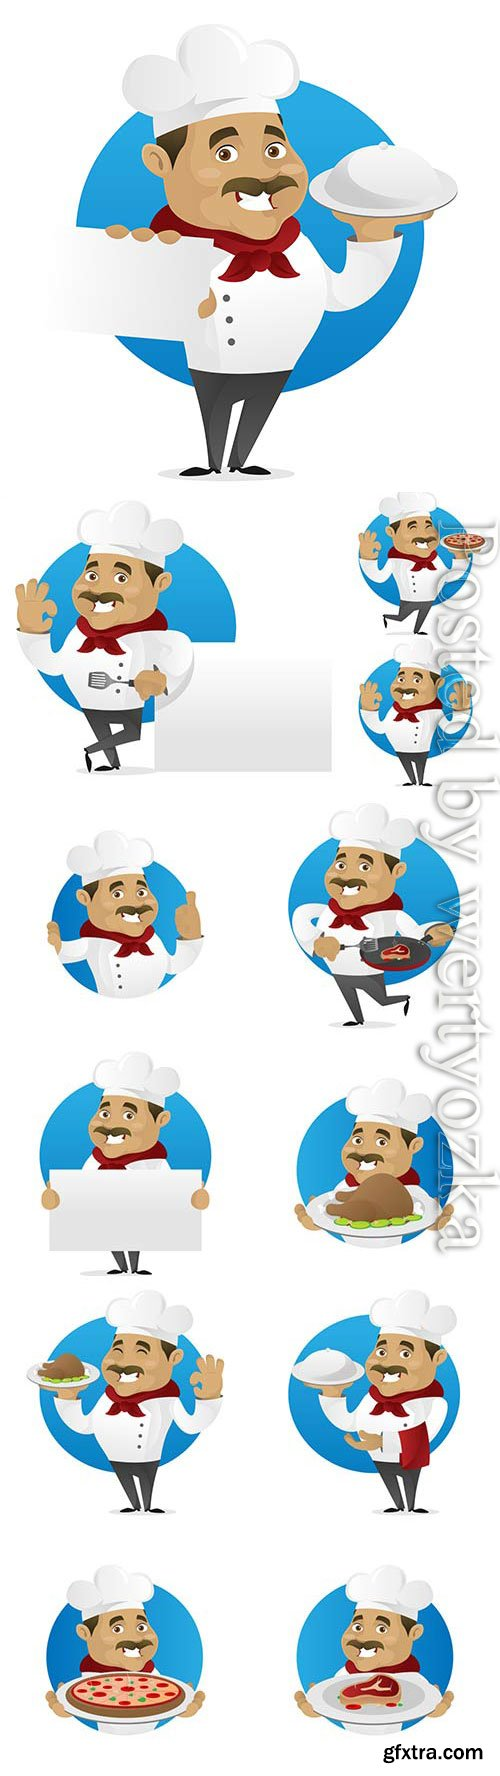 Cartoon chef with a dish in his hands in vector